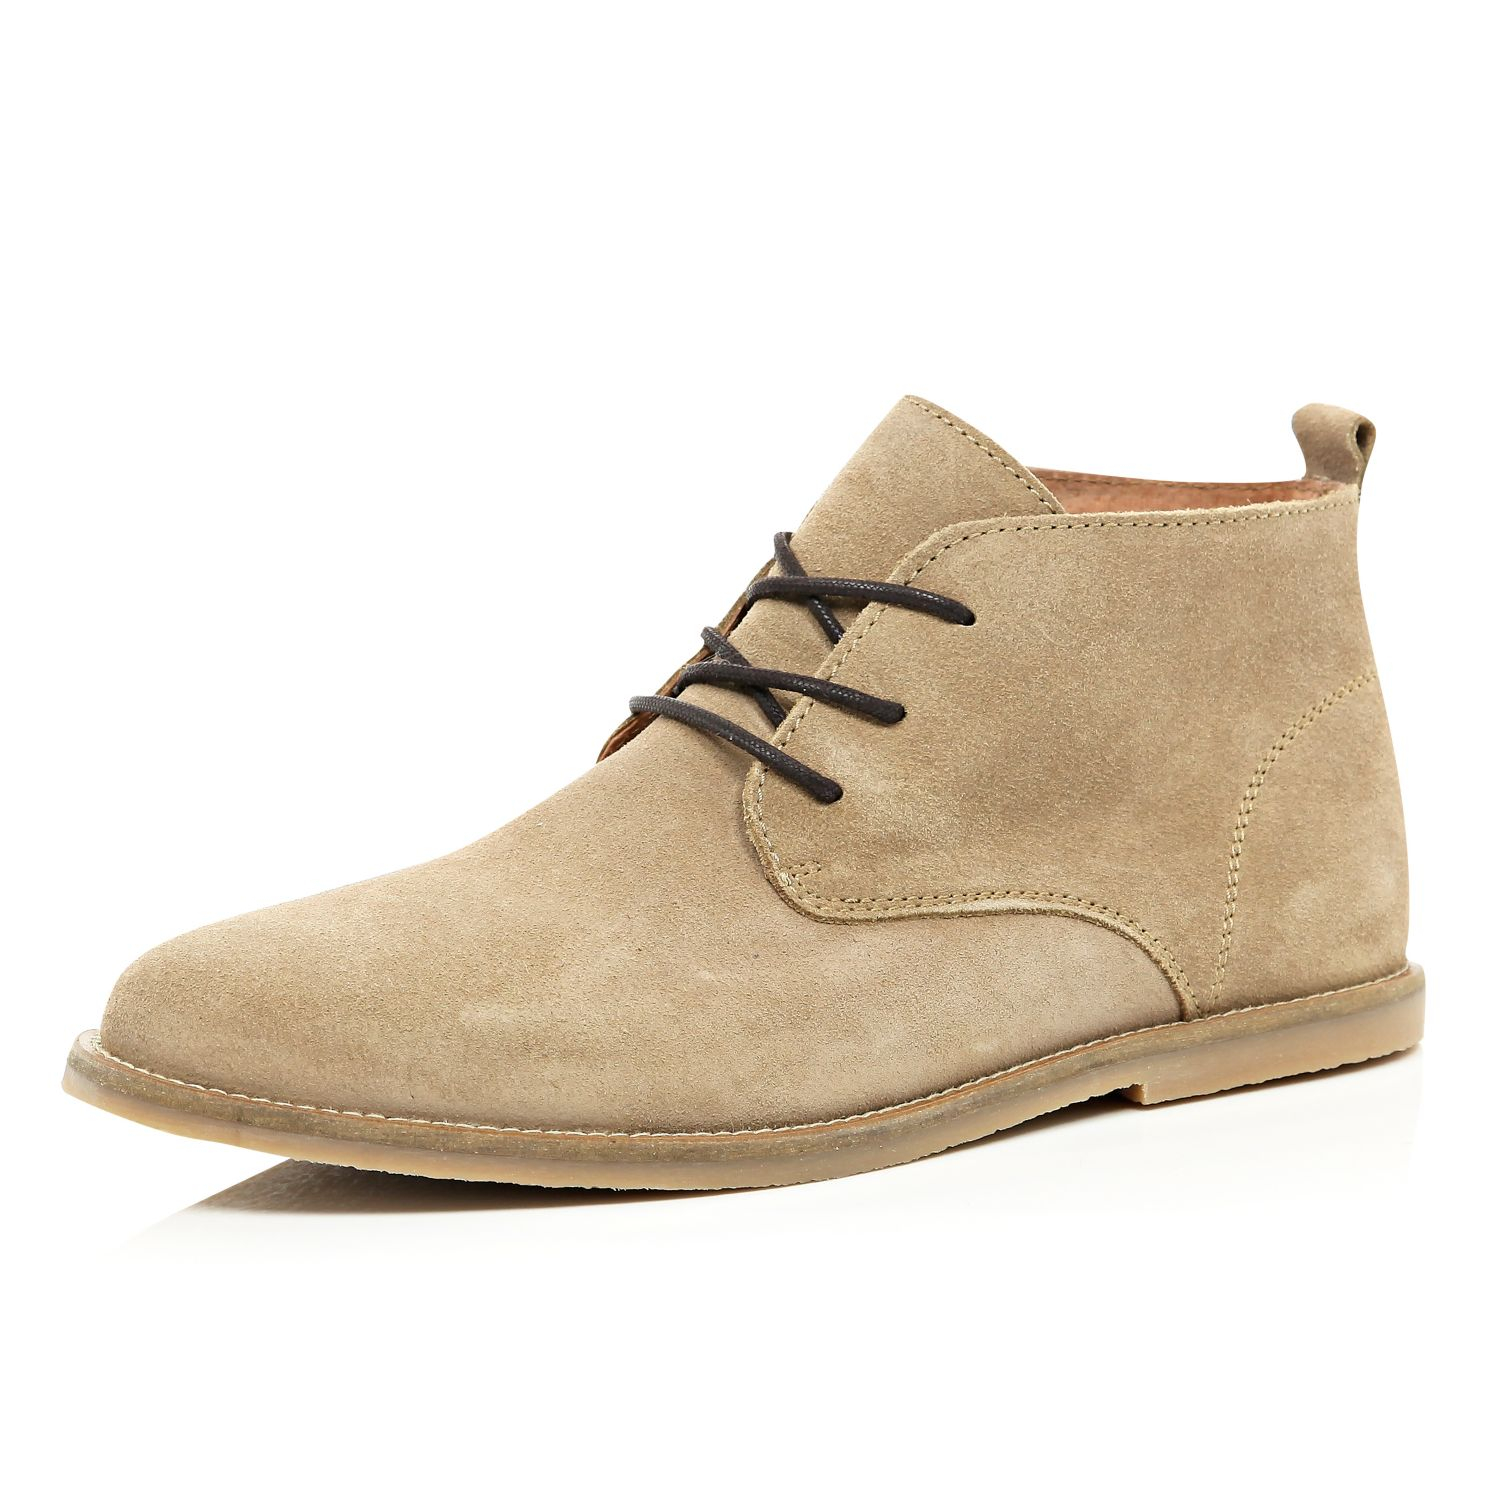 Mens Beige suede eyelet desert boots River Island 2018 Sale Online Buy Cheap Cheapest Price Bulk Designs Best Buy 2018 For Sale PolHM